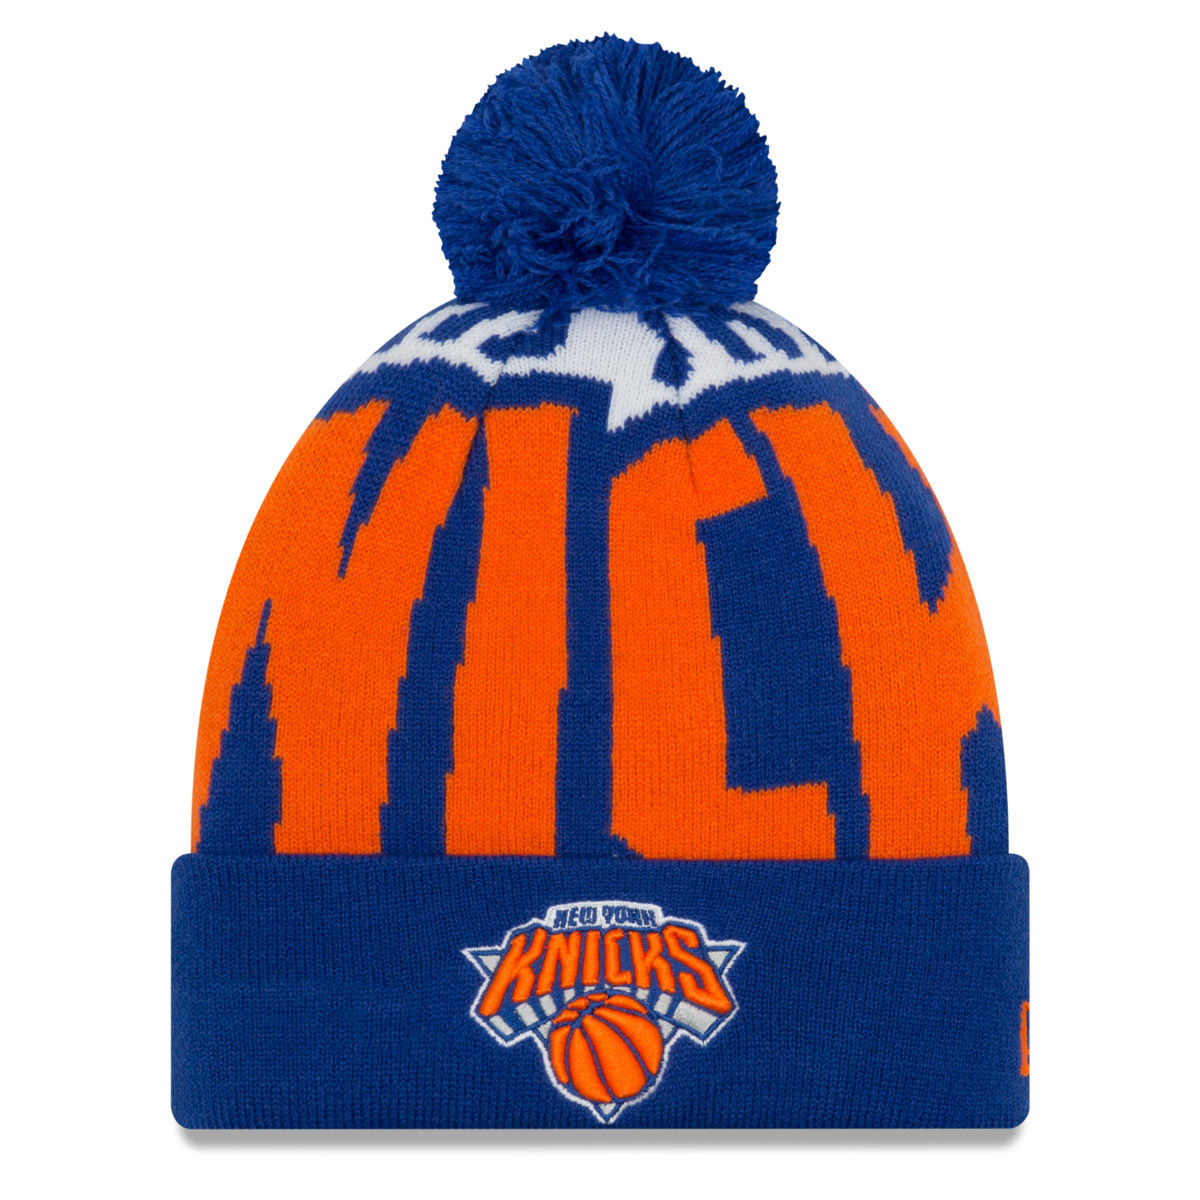 New York Knicks Adult 2018 Pom Knit Hat